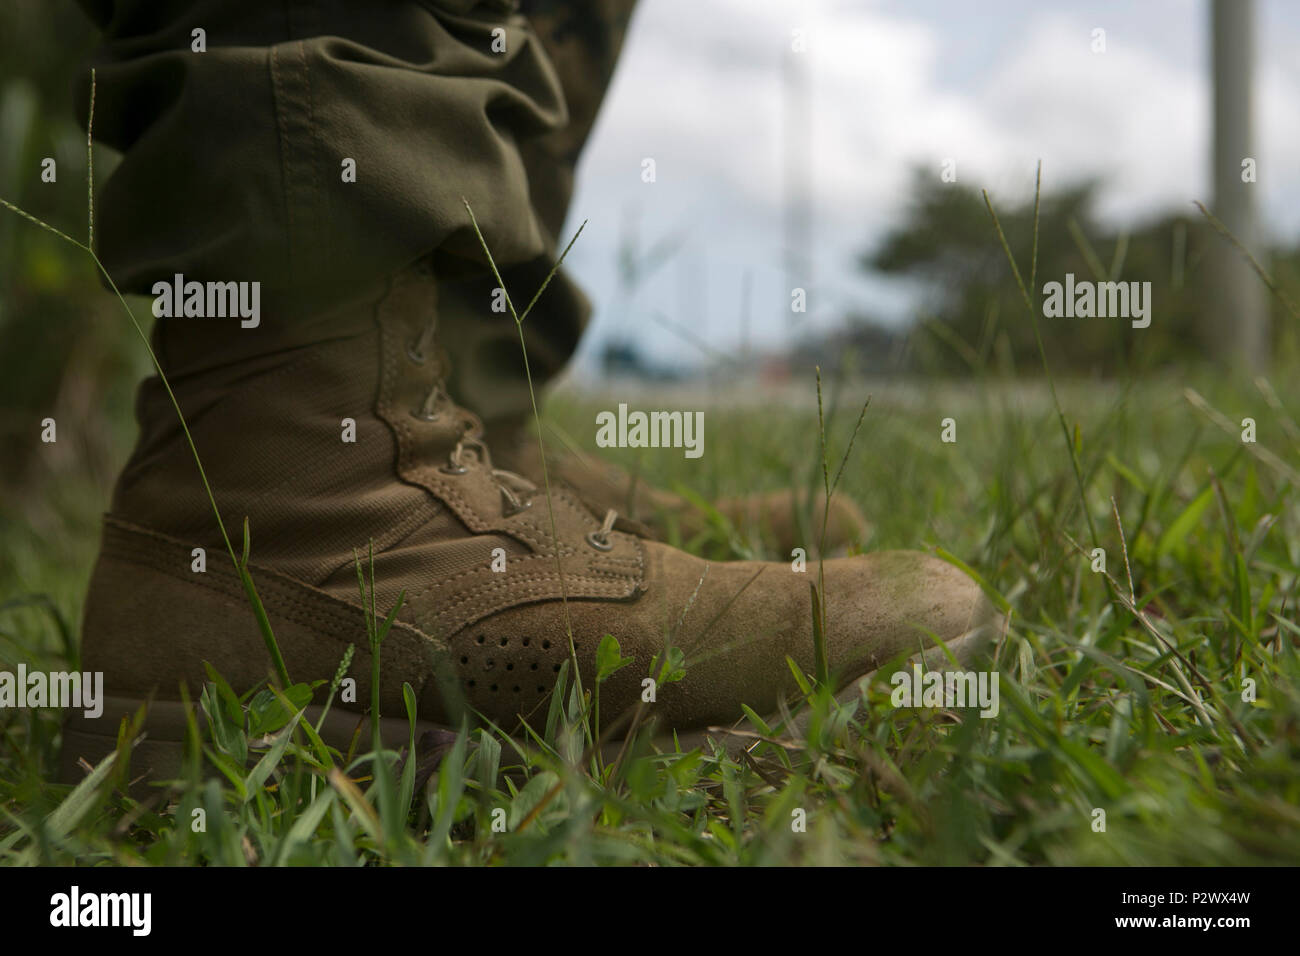 CAMP GONZALVES, OKINAWA, Japan -- Pictured is one of the boots being tested by the U.S. Marine Corps. Marines with India Company, 3rd Battalion, 3rd Marine Regiment flew from Hawaii to Okinawa, Japan to test the new boots and Marine Corps combat utility uniforms at the Jungle Warfare Training Center. The new boots and uniforms are able to dry faster and weigh less than the current uniforms. (U.S. Marine Corps photo by Cpl. Tyler Ngiraswei/ Released) - Stock Image